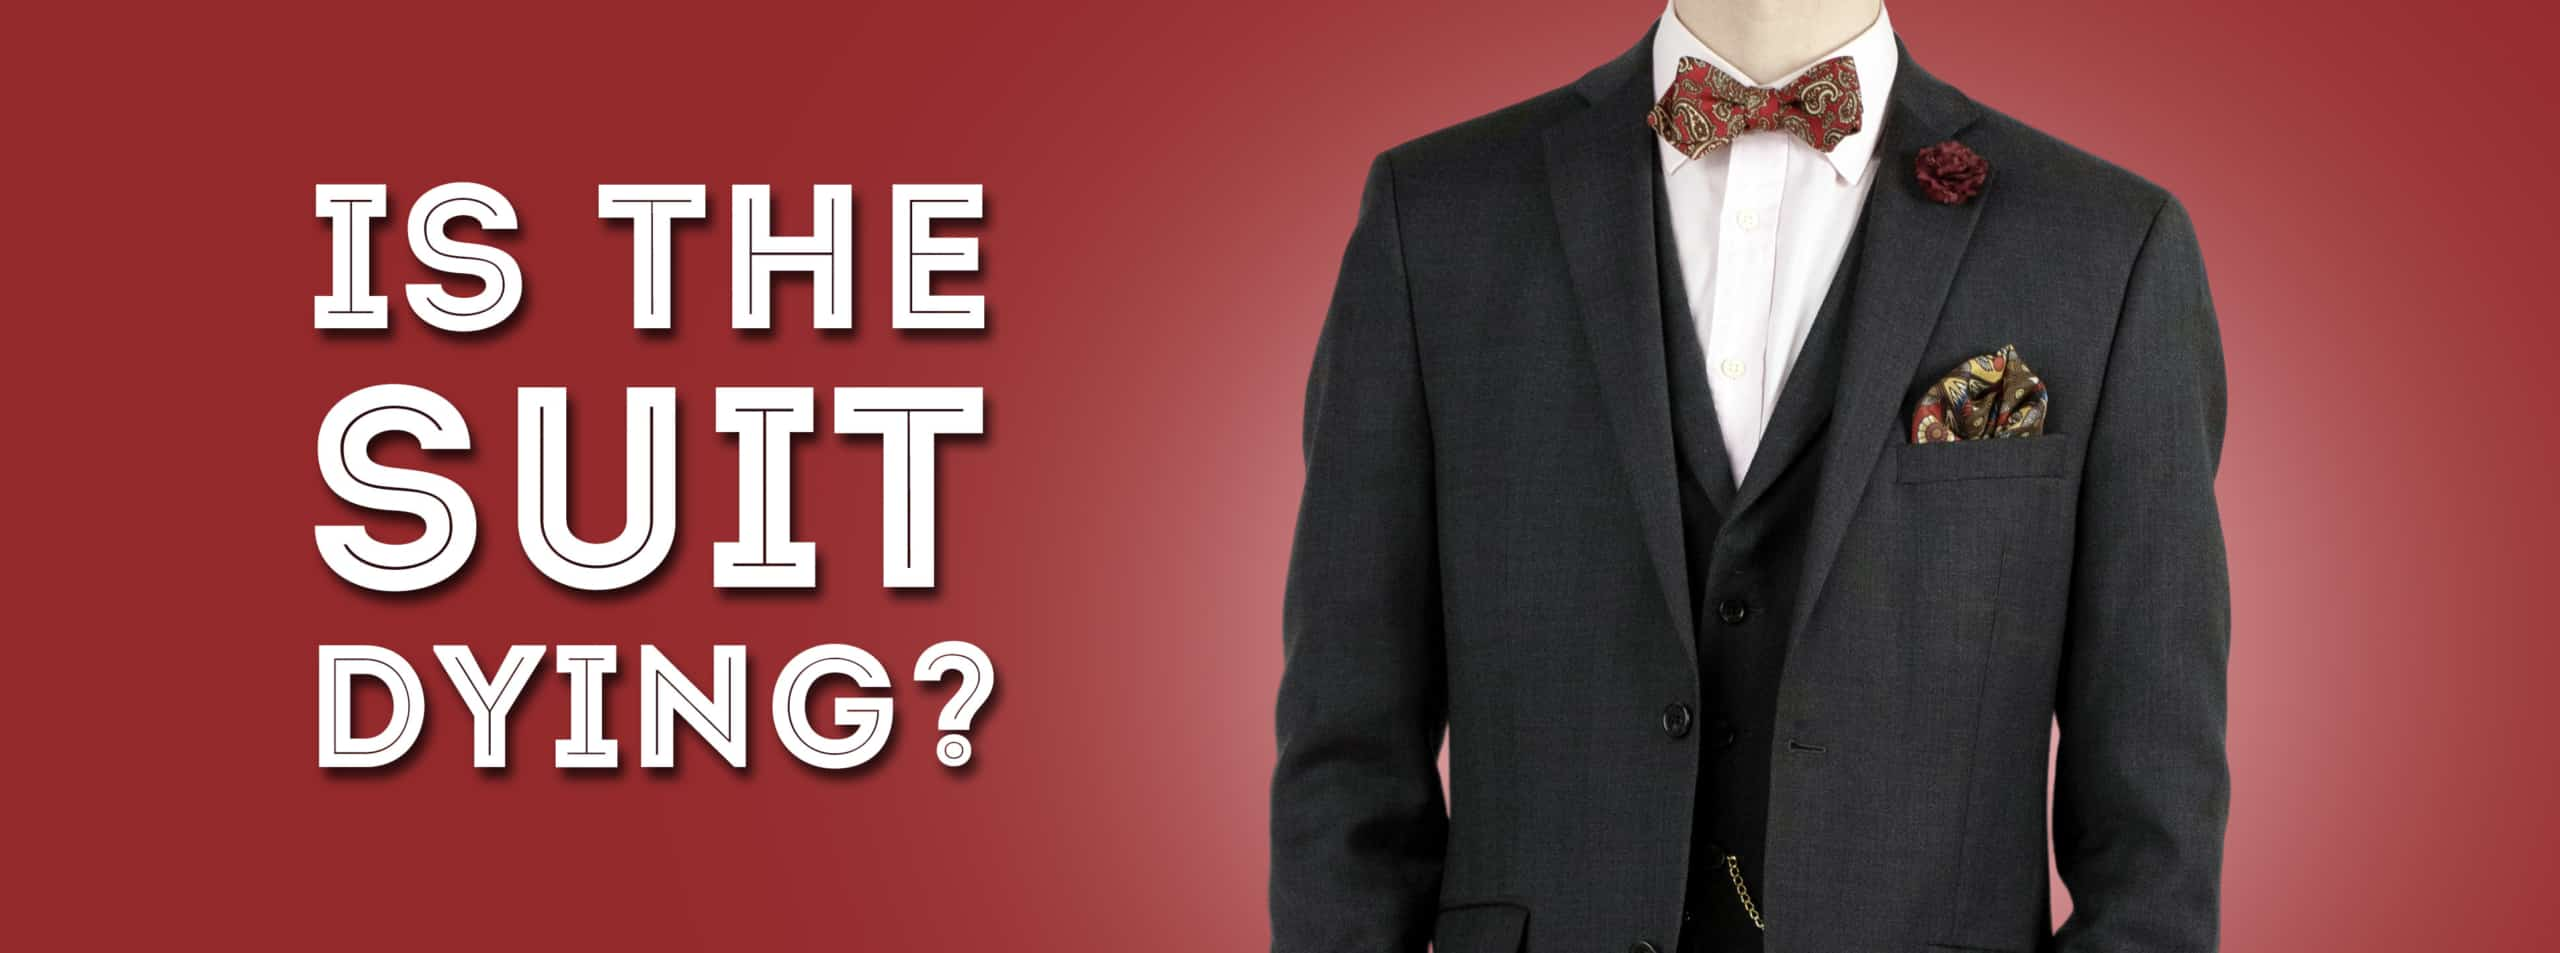 Is the Suit Dying? - The Role of Classic Menswear in Today's World — Gentleman's Gazette